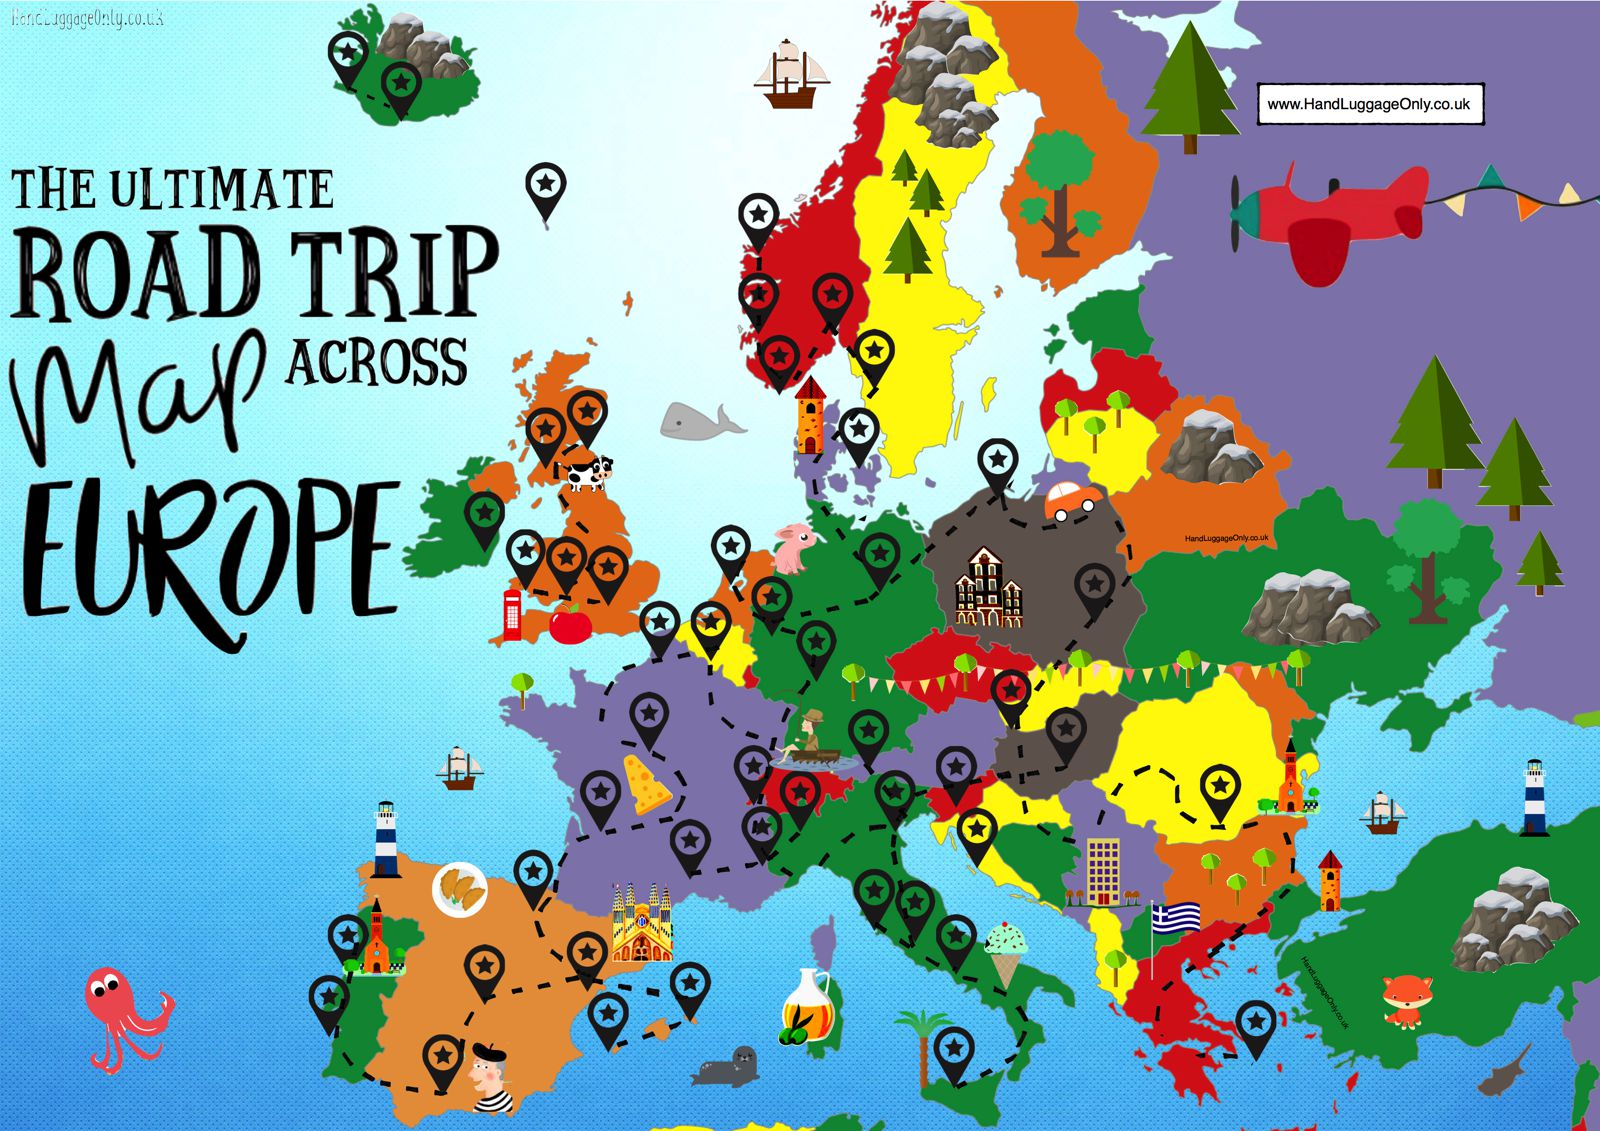 Europe Map.The Complete Europe Road Trip Map 49 Places To Visit And Things To